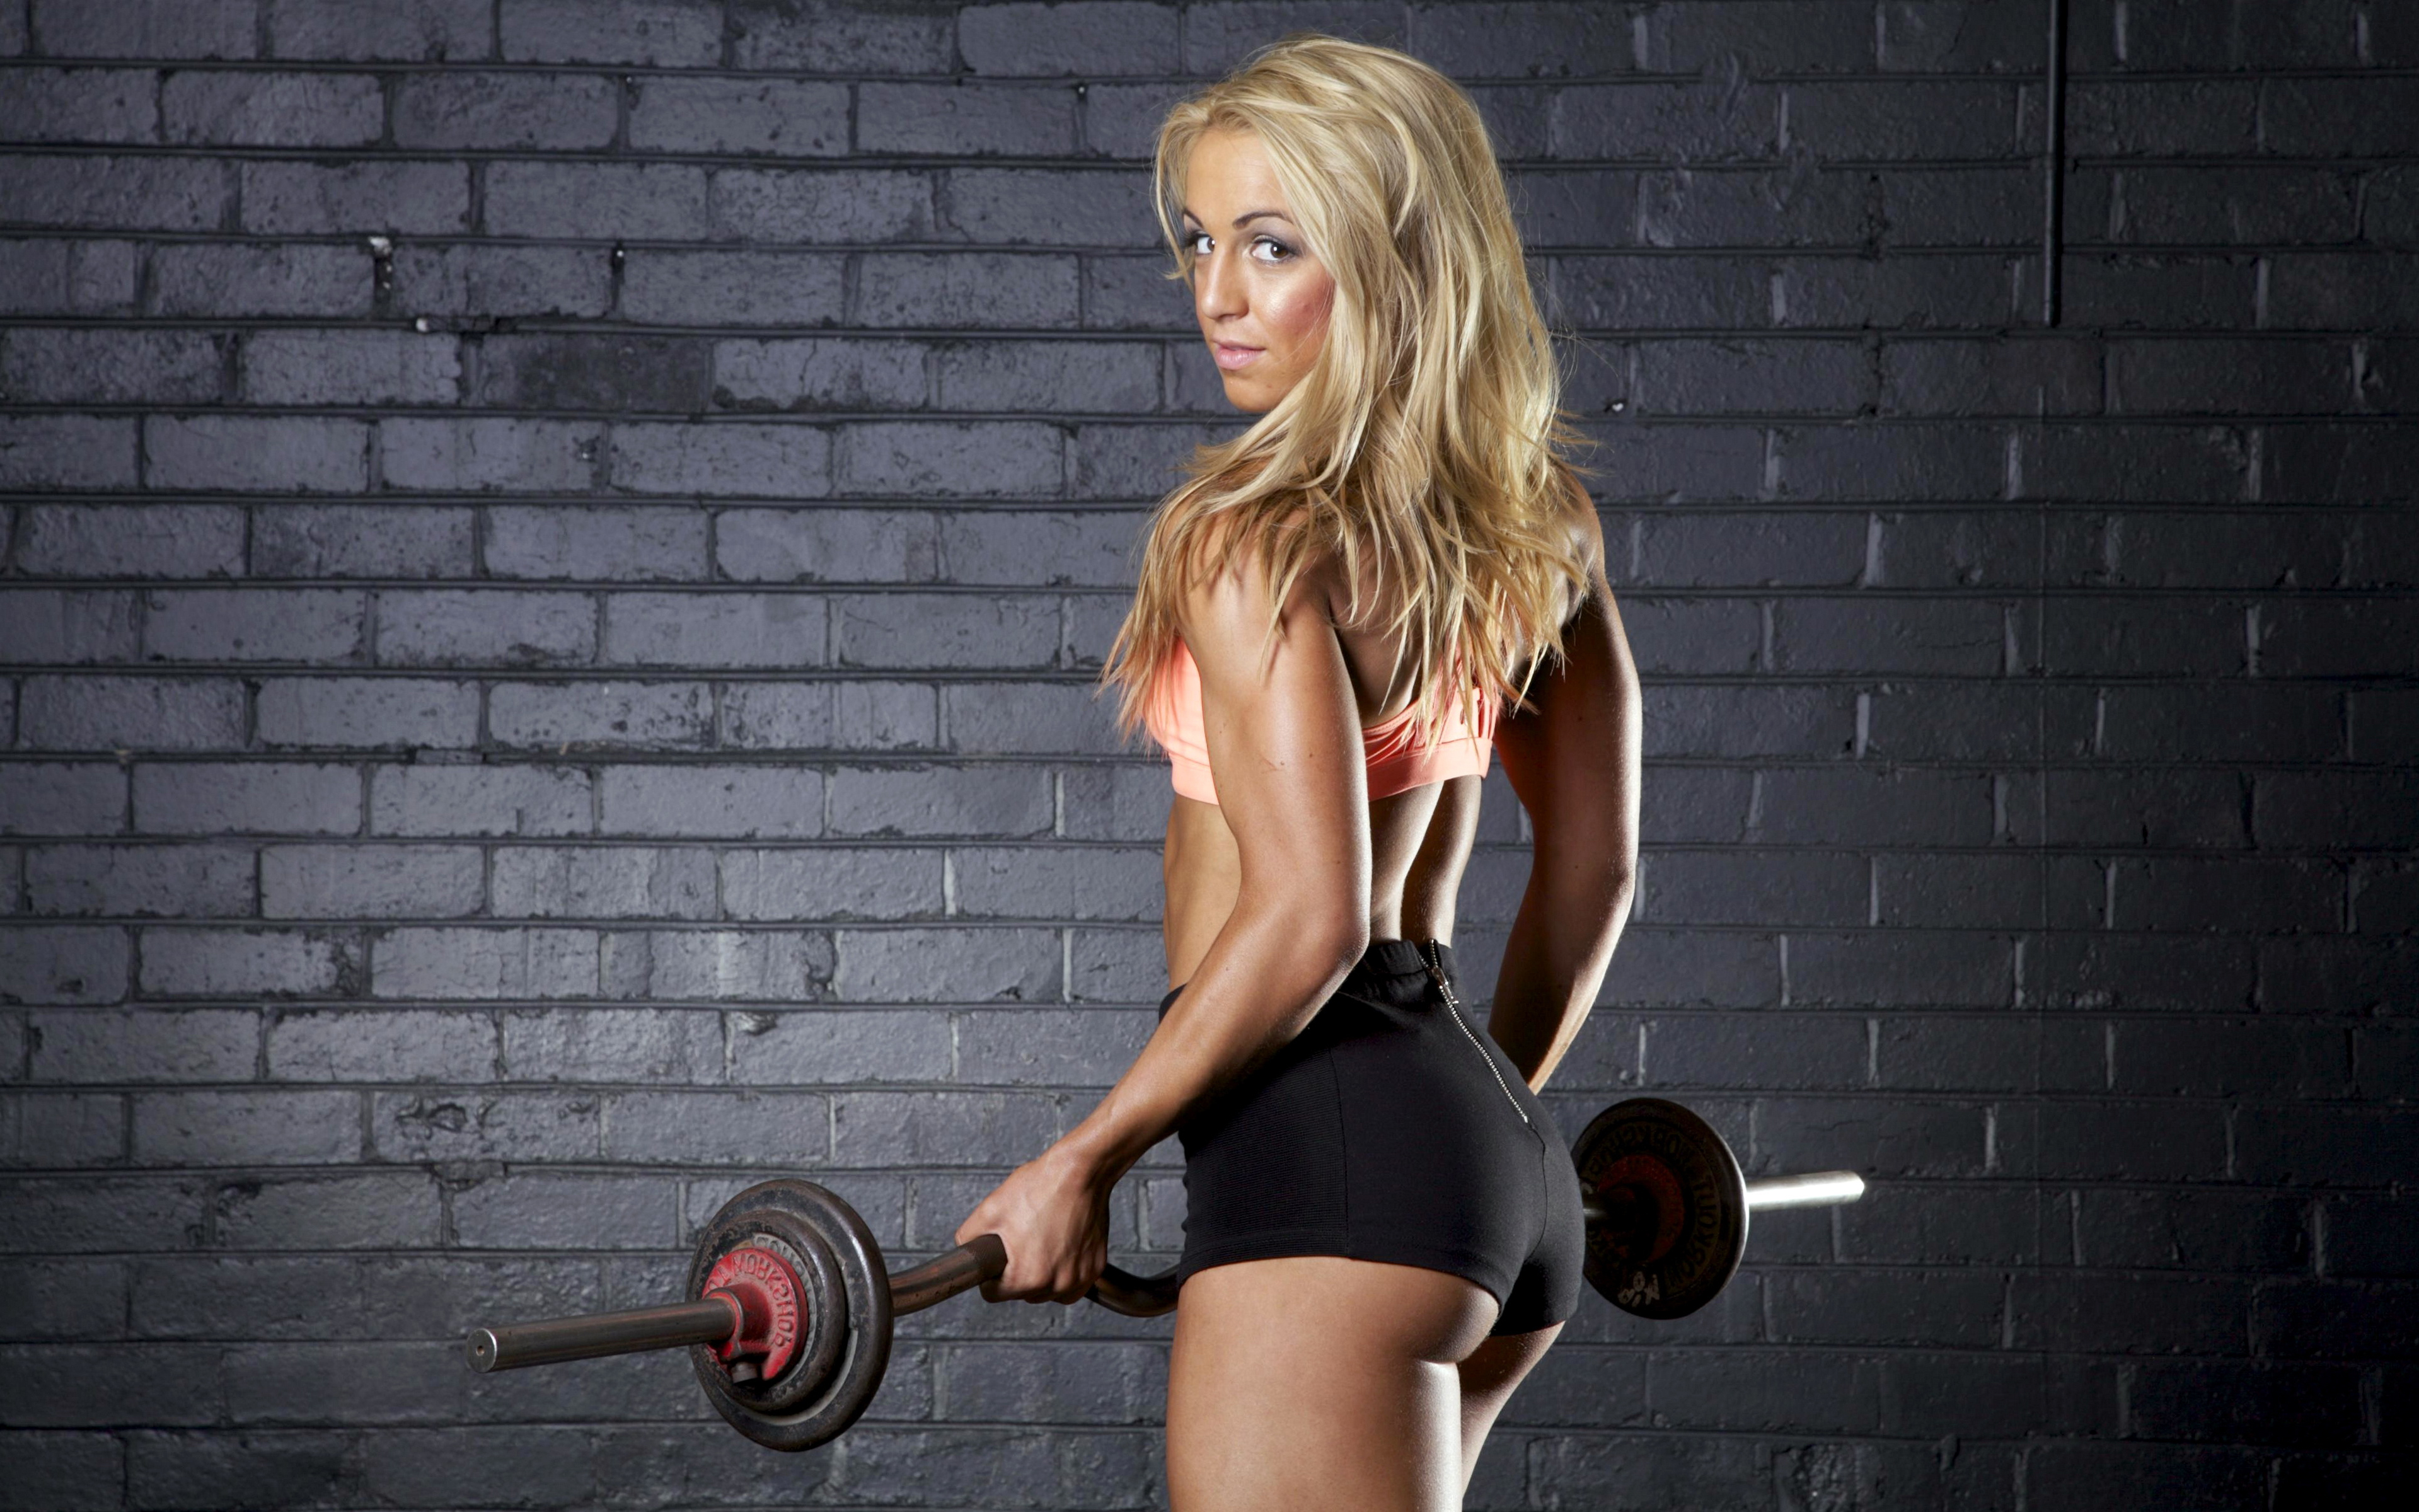 Fitness Girl Full Hd Wallpaper And Background Image -4565